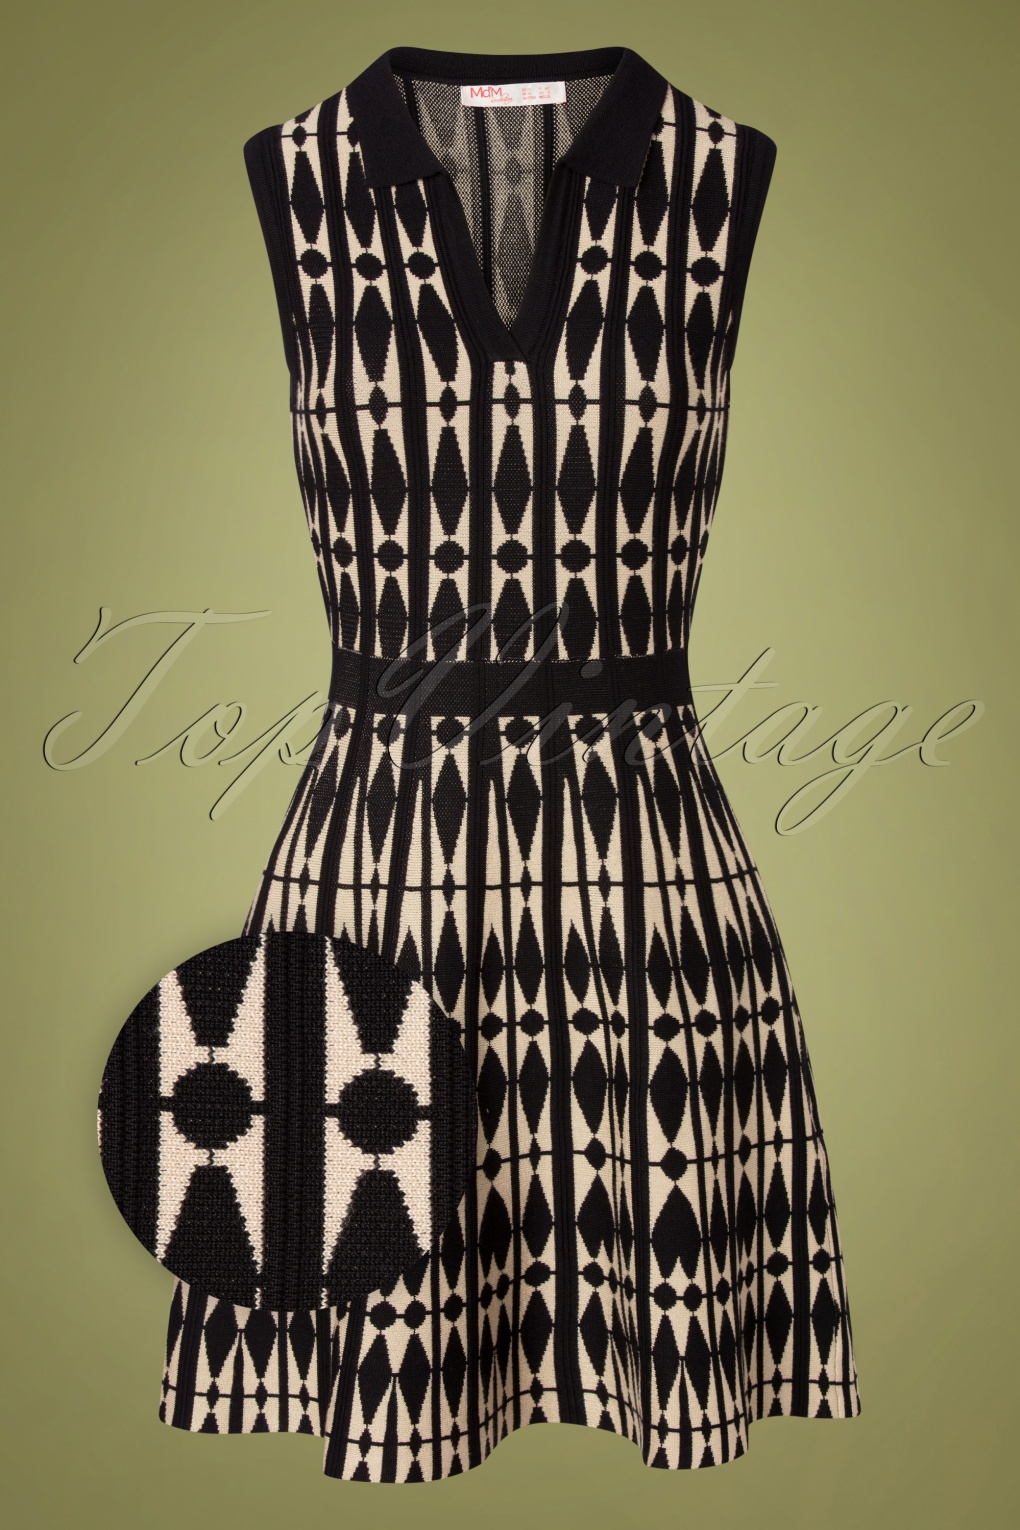 60s Dresses | 1960s Dresses Mod, Mini, Hippie 60s Rowan Harlequin Dress in Black and Cream £92.36 AT vintagedancer.com